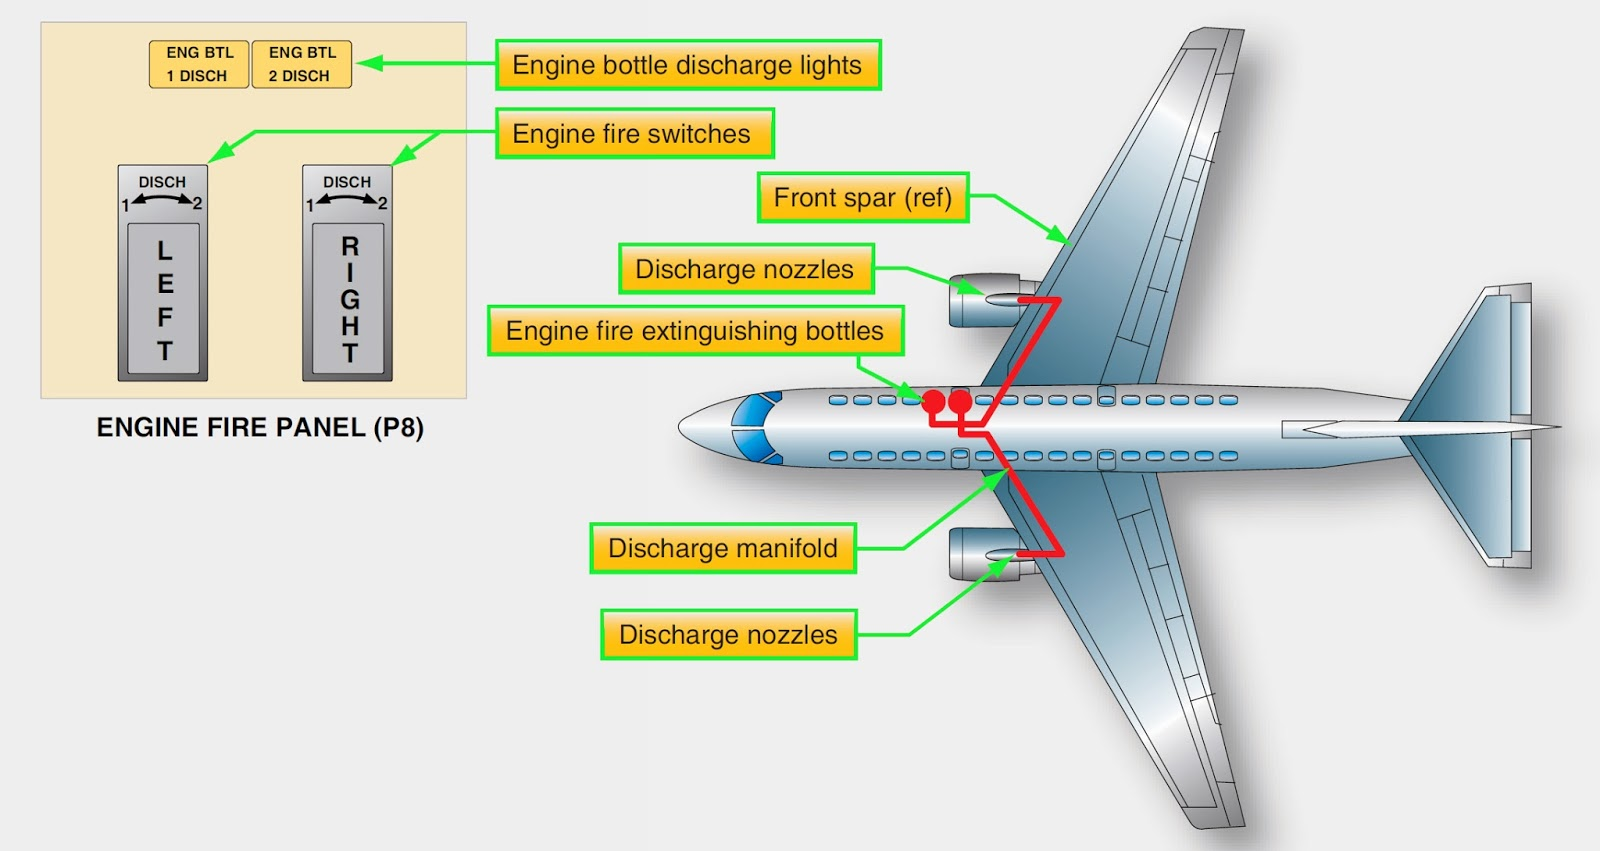 Aircraft systems boeing 777 aircraft fire detection and boeing 777 aircraft fire detection and extinguishing system cheapraybanclubmaster Images